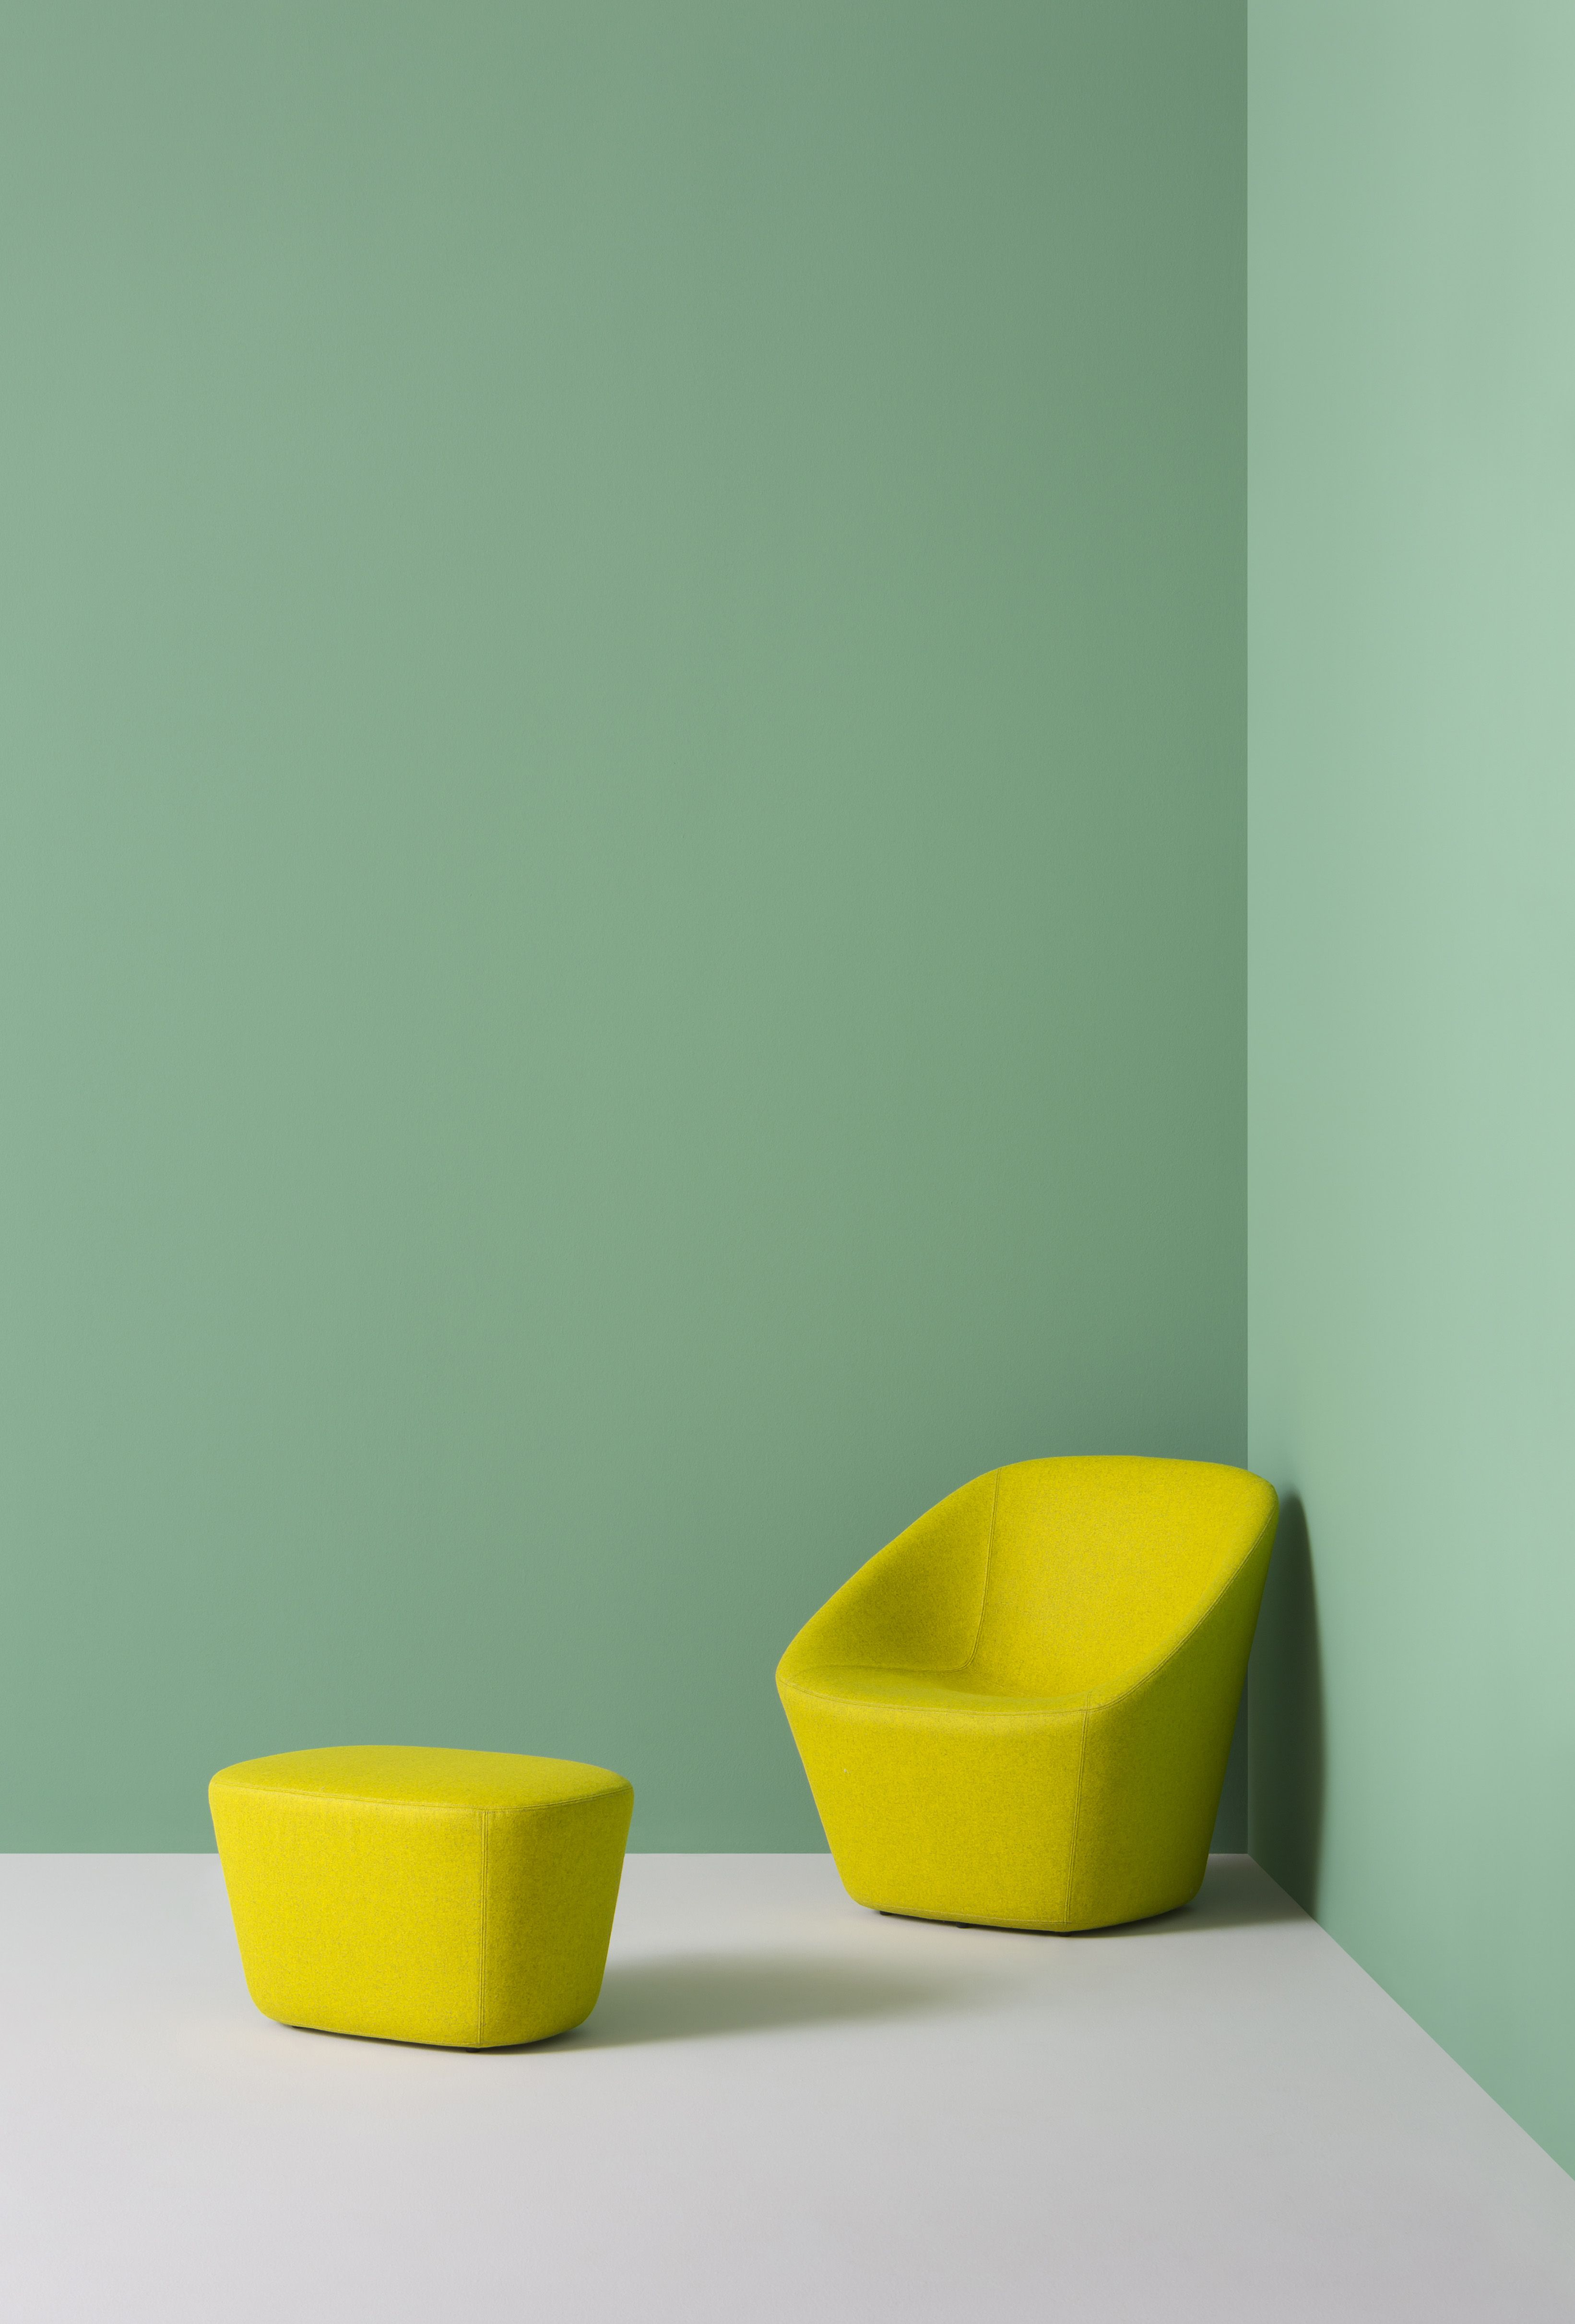 Explore Furniture Chairs, Color Combinations, And More